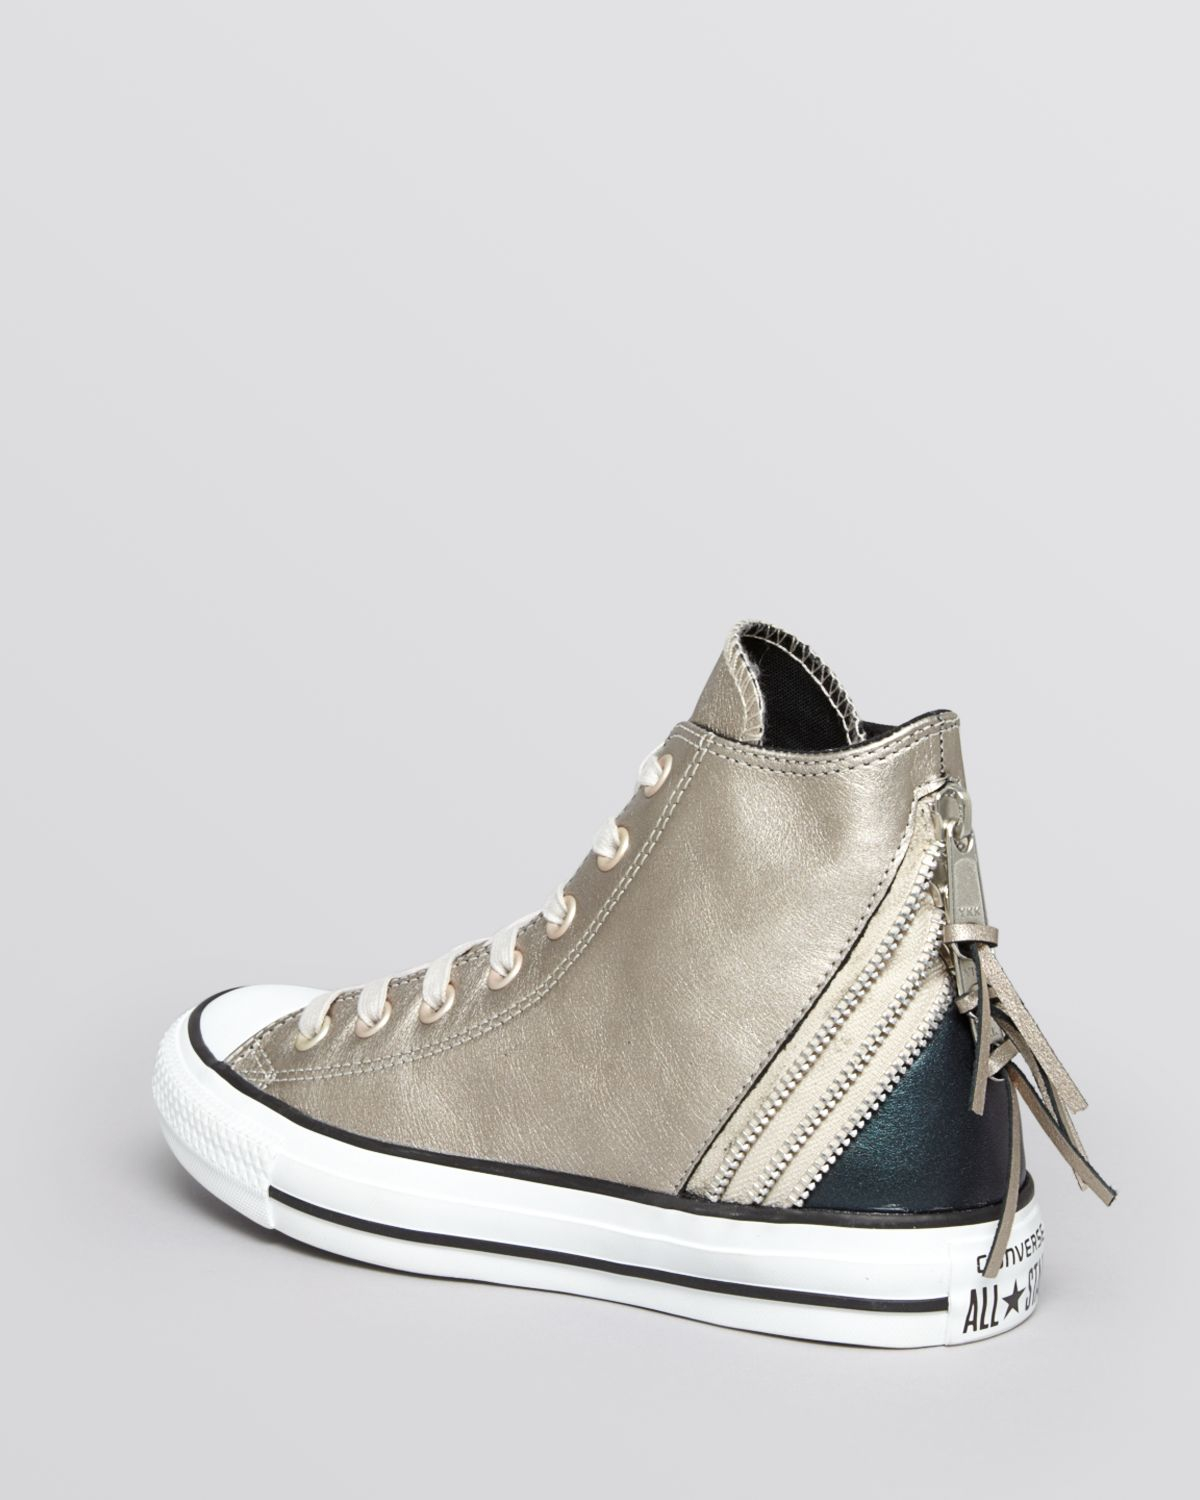 Converse Lace Up High Top Sneakers Tri Zip Metallic In